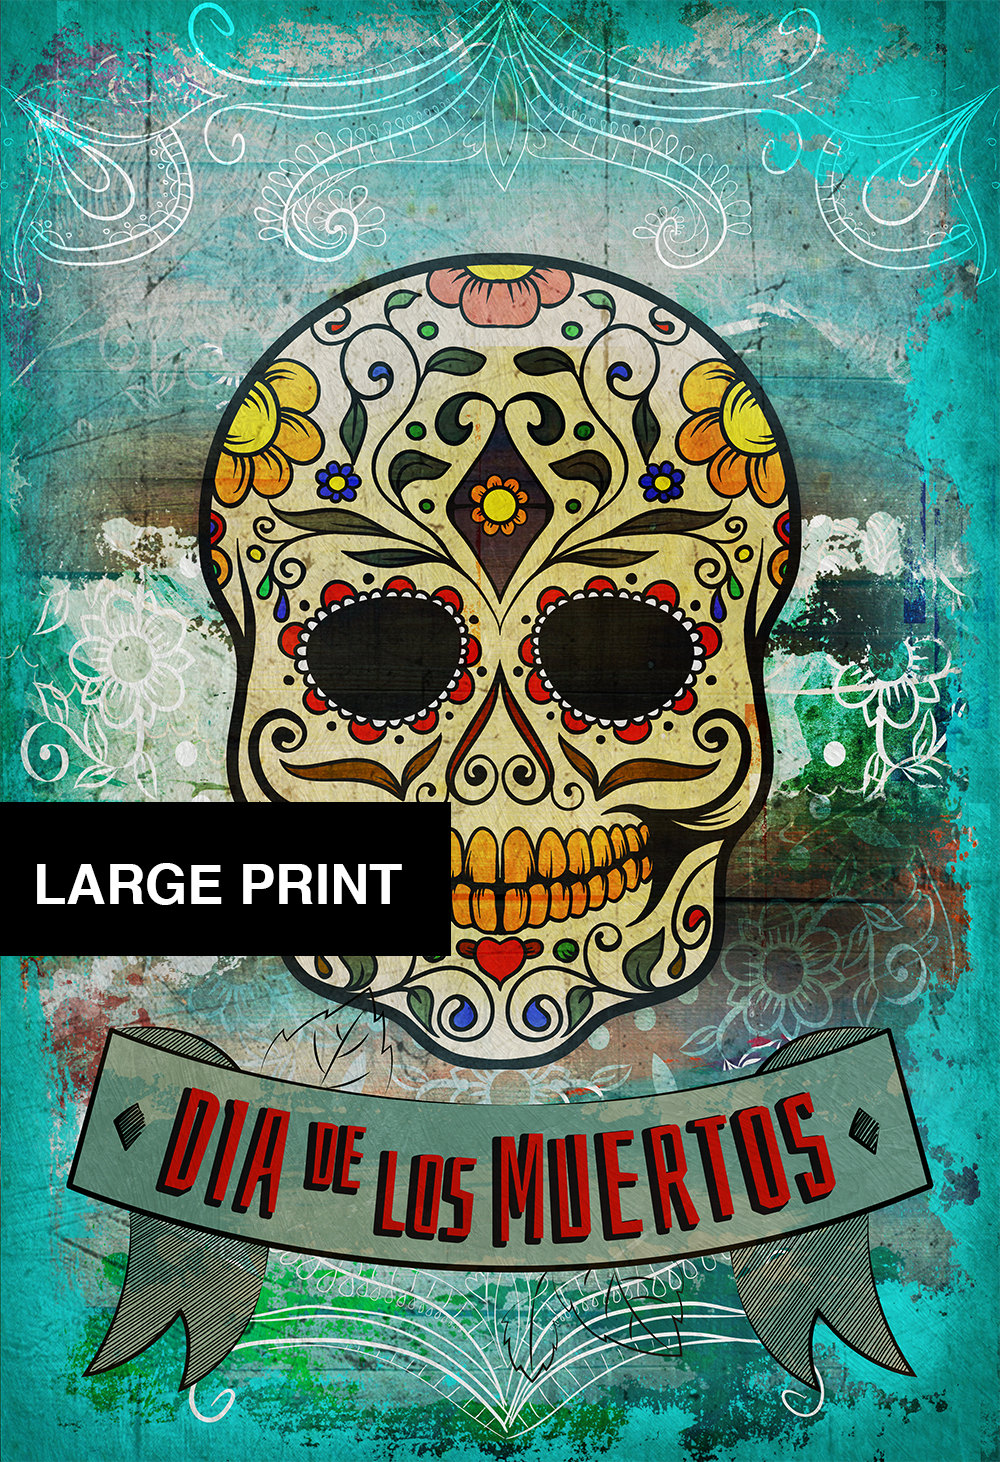 dia de los muertos essay These essays are their contribution to universidad popular's 2014 day of the dead celebration, which took place last october 29th in our community hall the multiplicity of perspective and the depth of analysis and research presented here is but a small example of the wonderful minds that walk through.